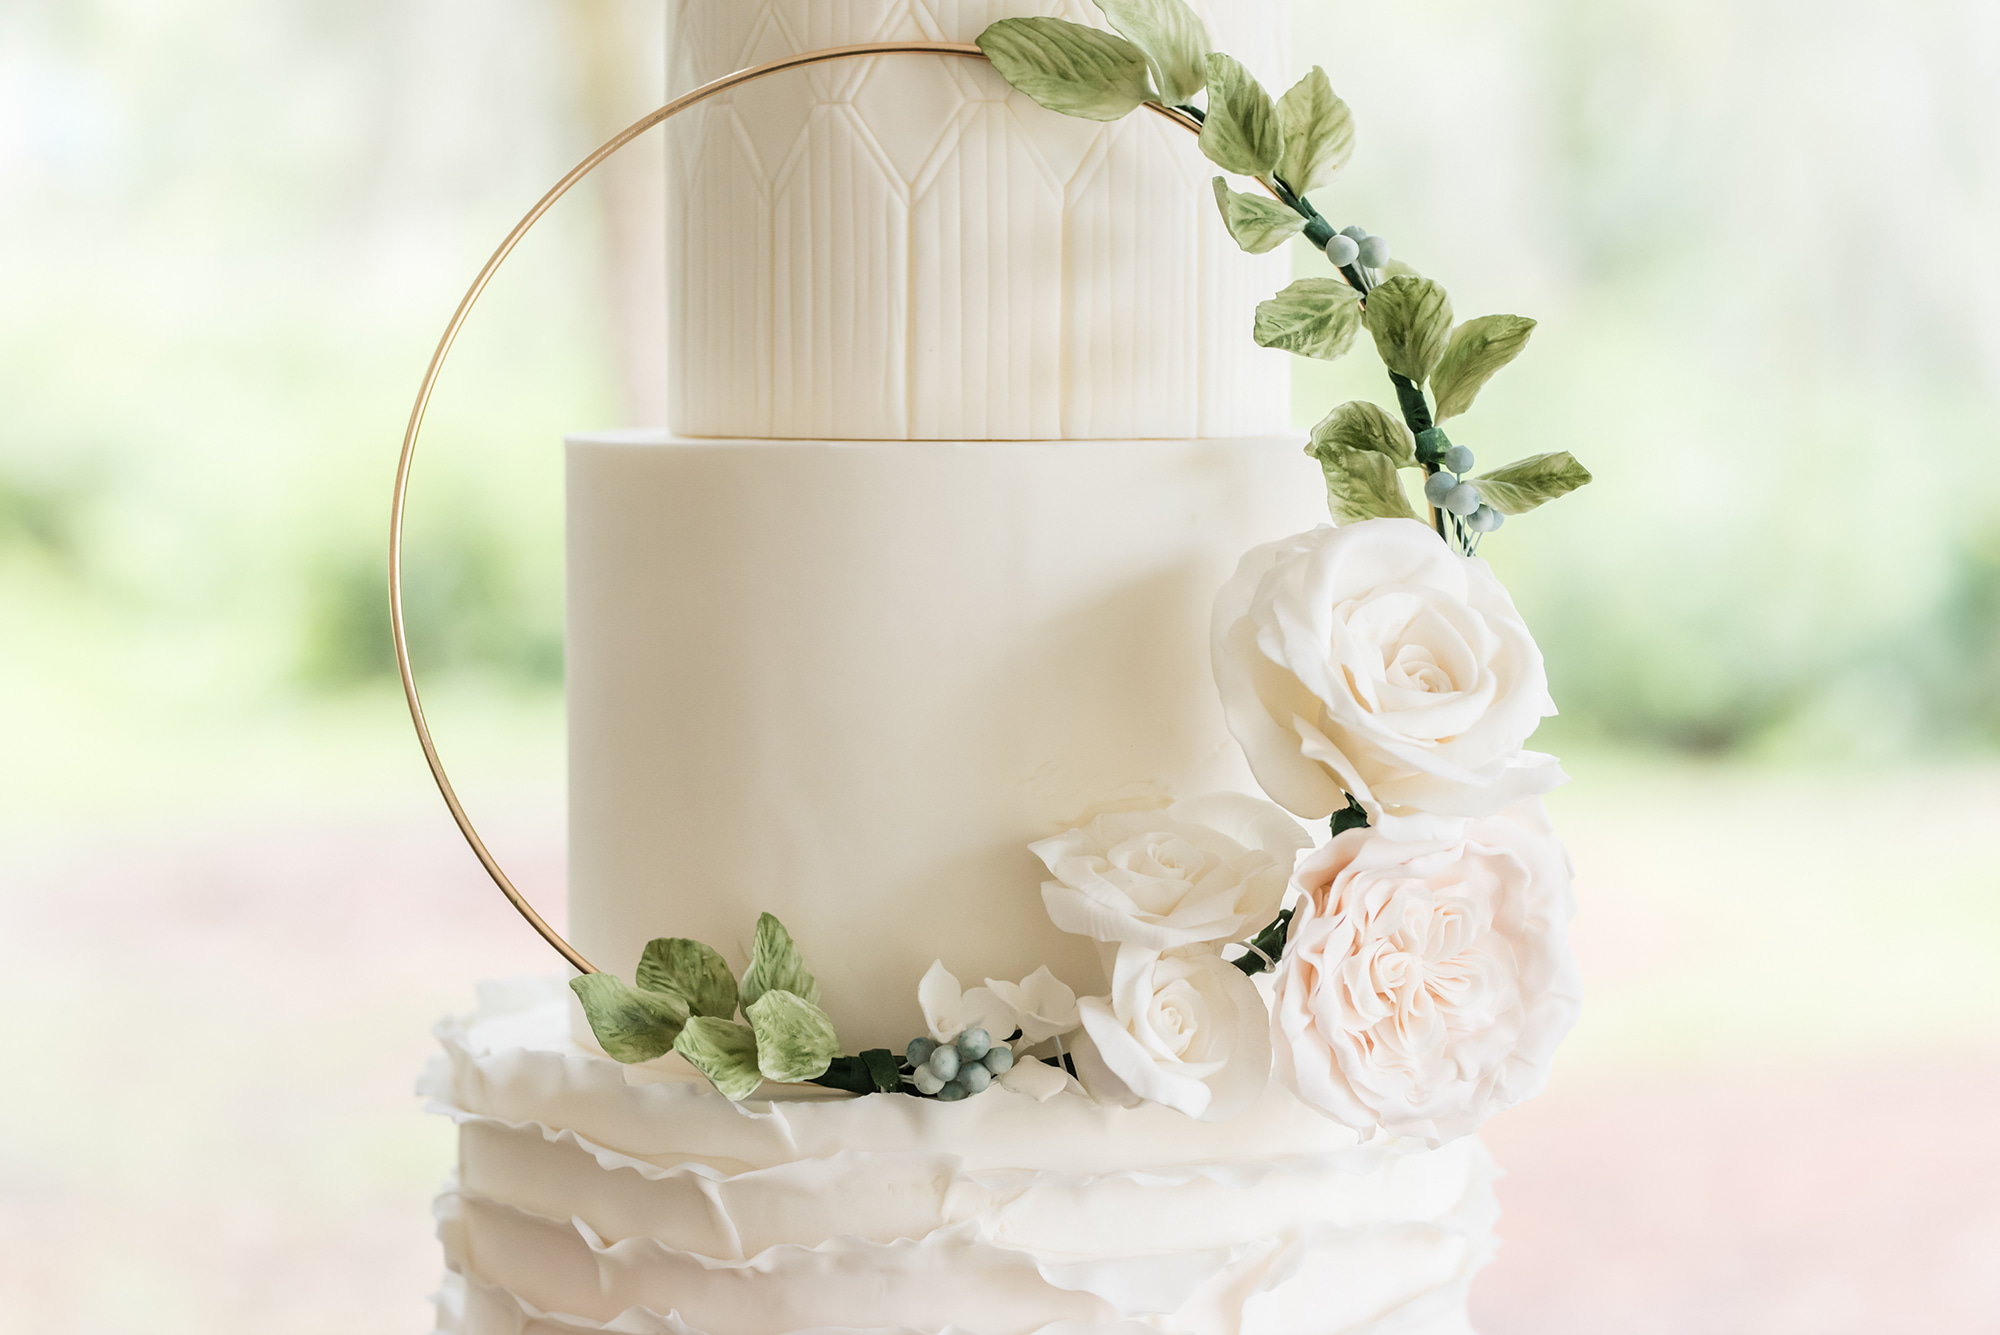 Dusty Rose Styled Wedding Shoot, Three Tier White Ruffled Bottom Tier Wedding Cake with Gold Circular Ornament with Greenery Leaves, Blush Pink and White Roses   Tampa Bay Wedding Planner Elegant Affairs by Design   Wedding Baker Tampa Bay Cake Company